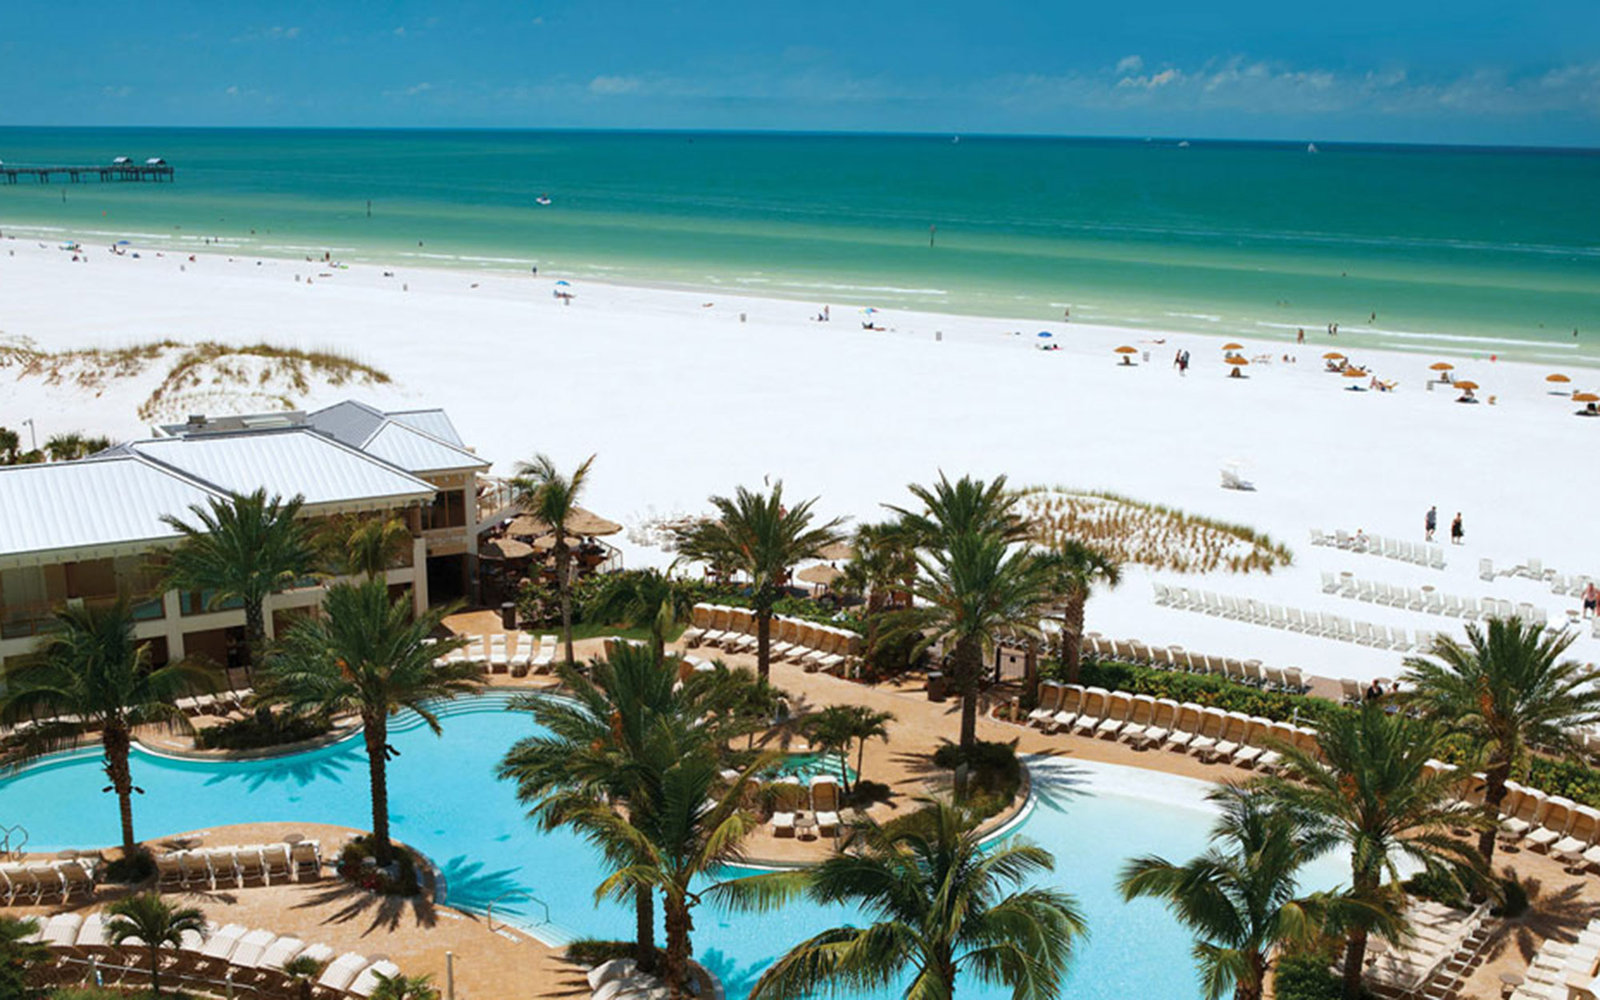 No. 3 Sandpearl Resort: Clearwater, Florida